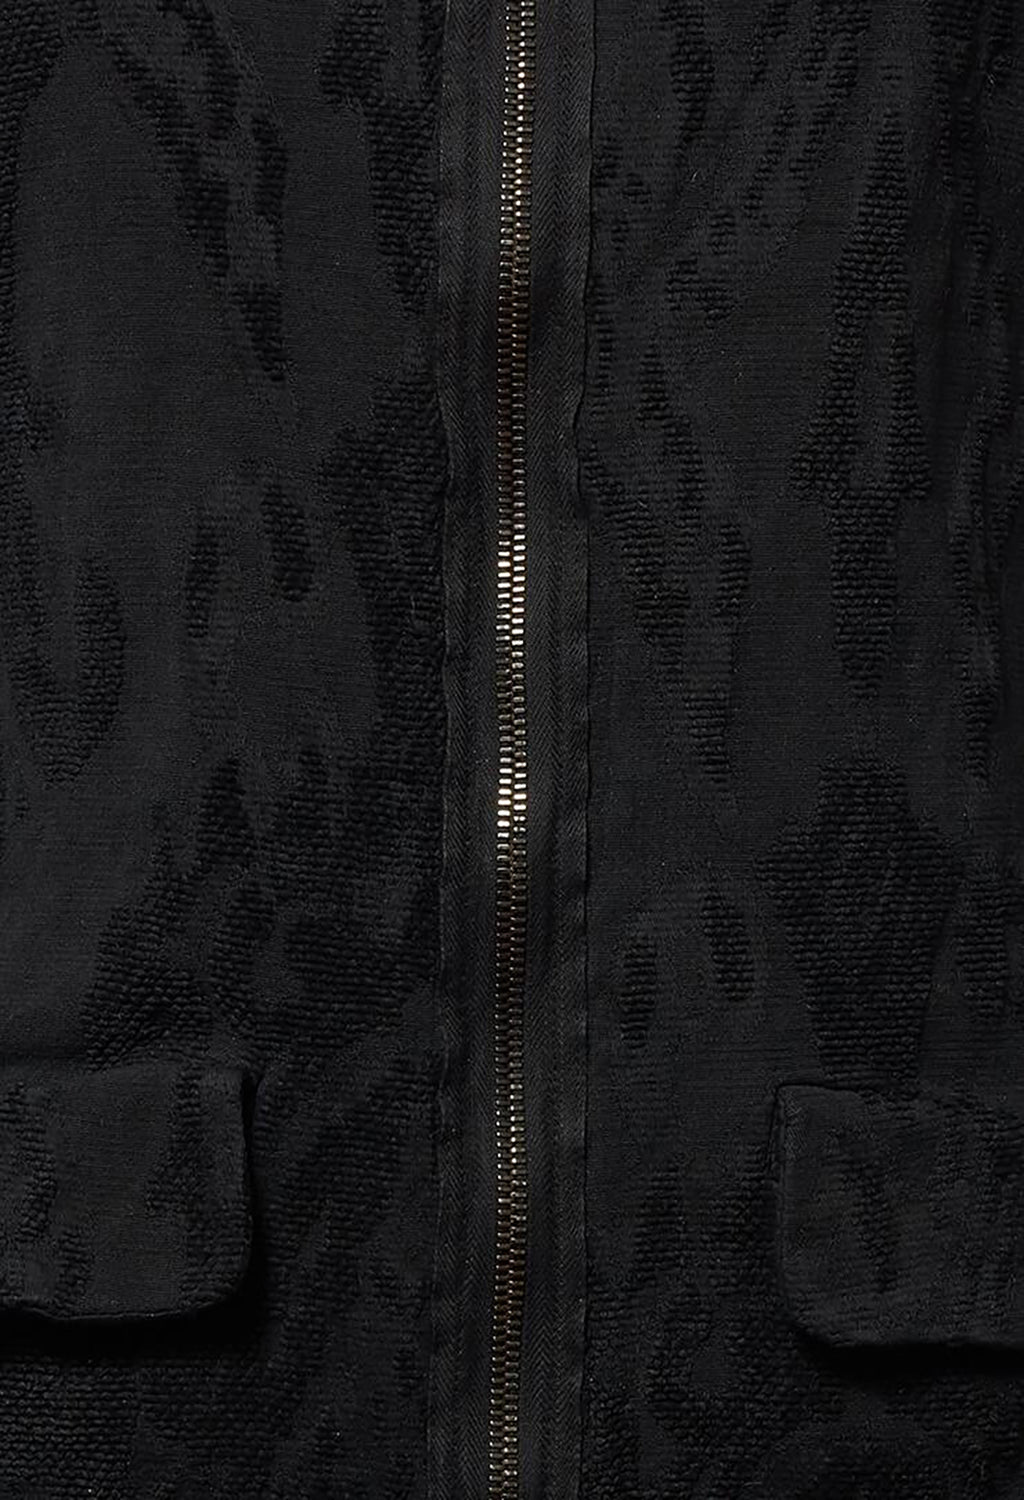 Jacket with Textured Fabric in Black Cloud